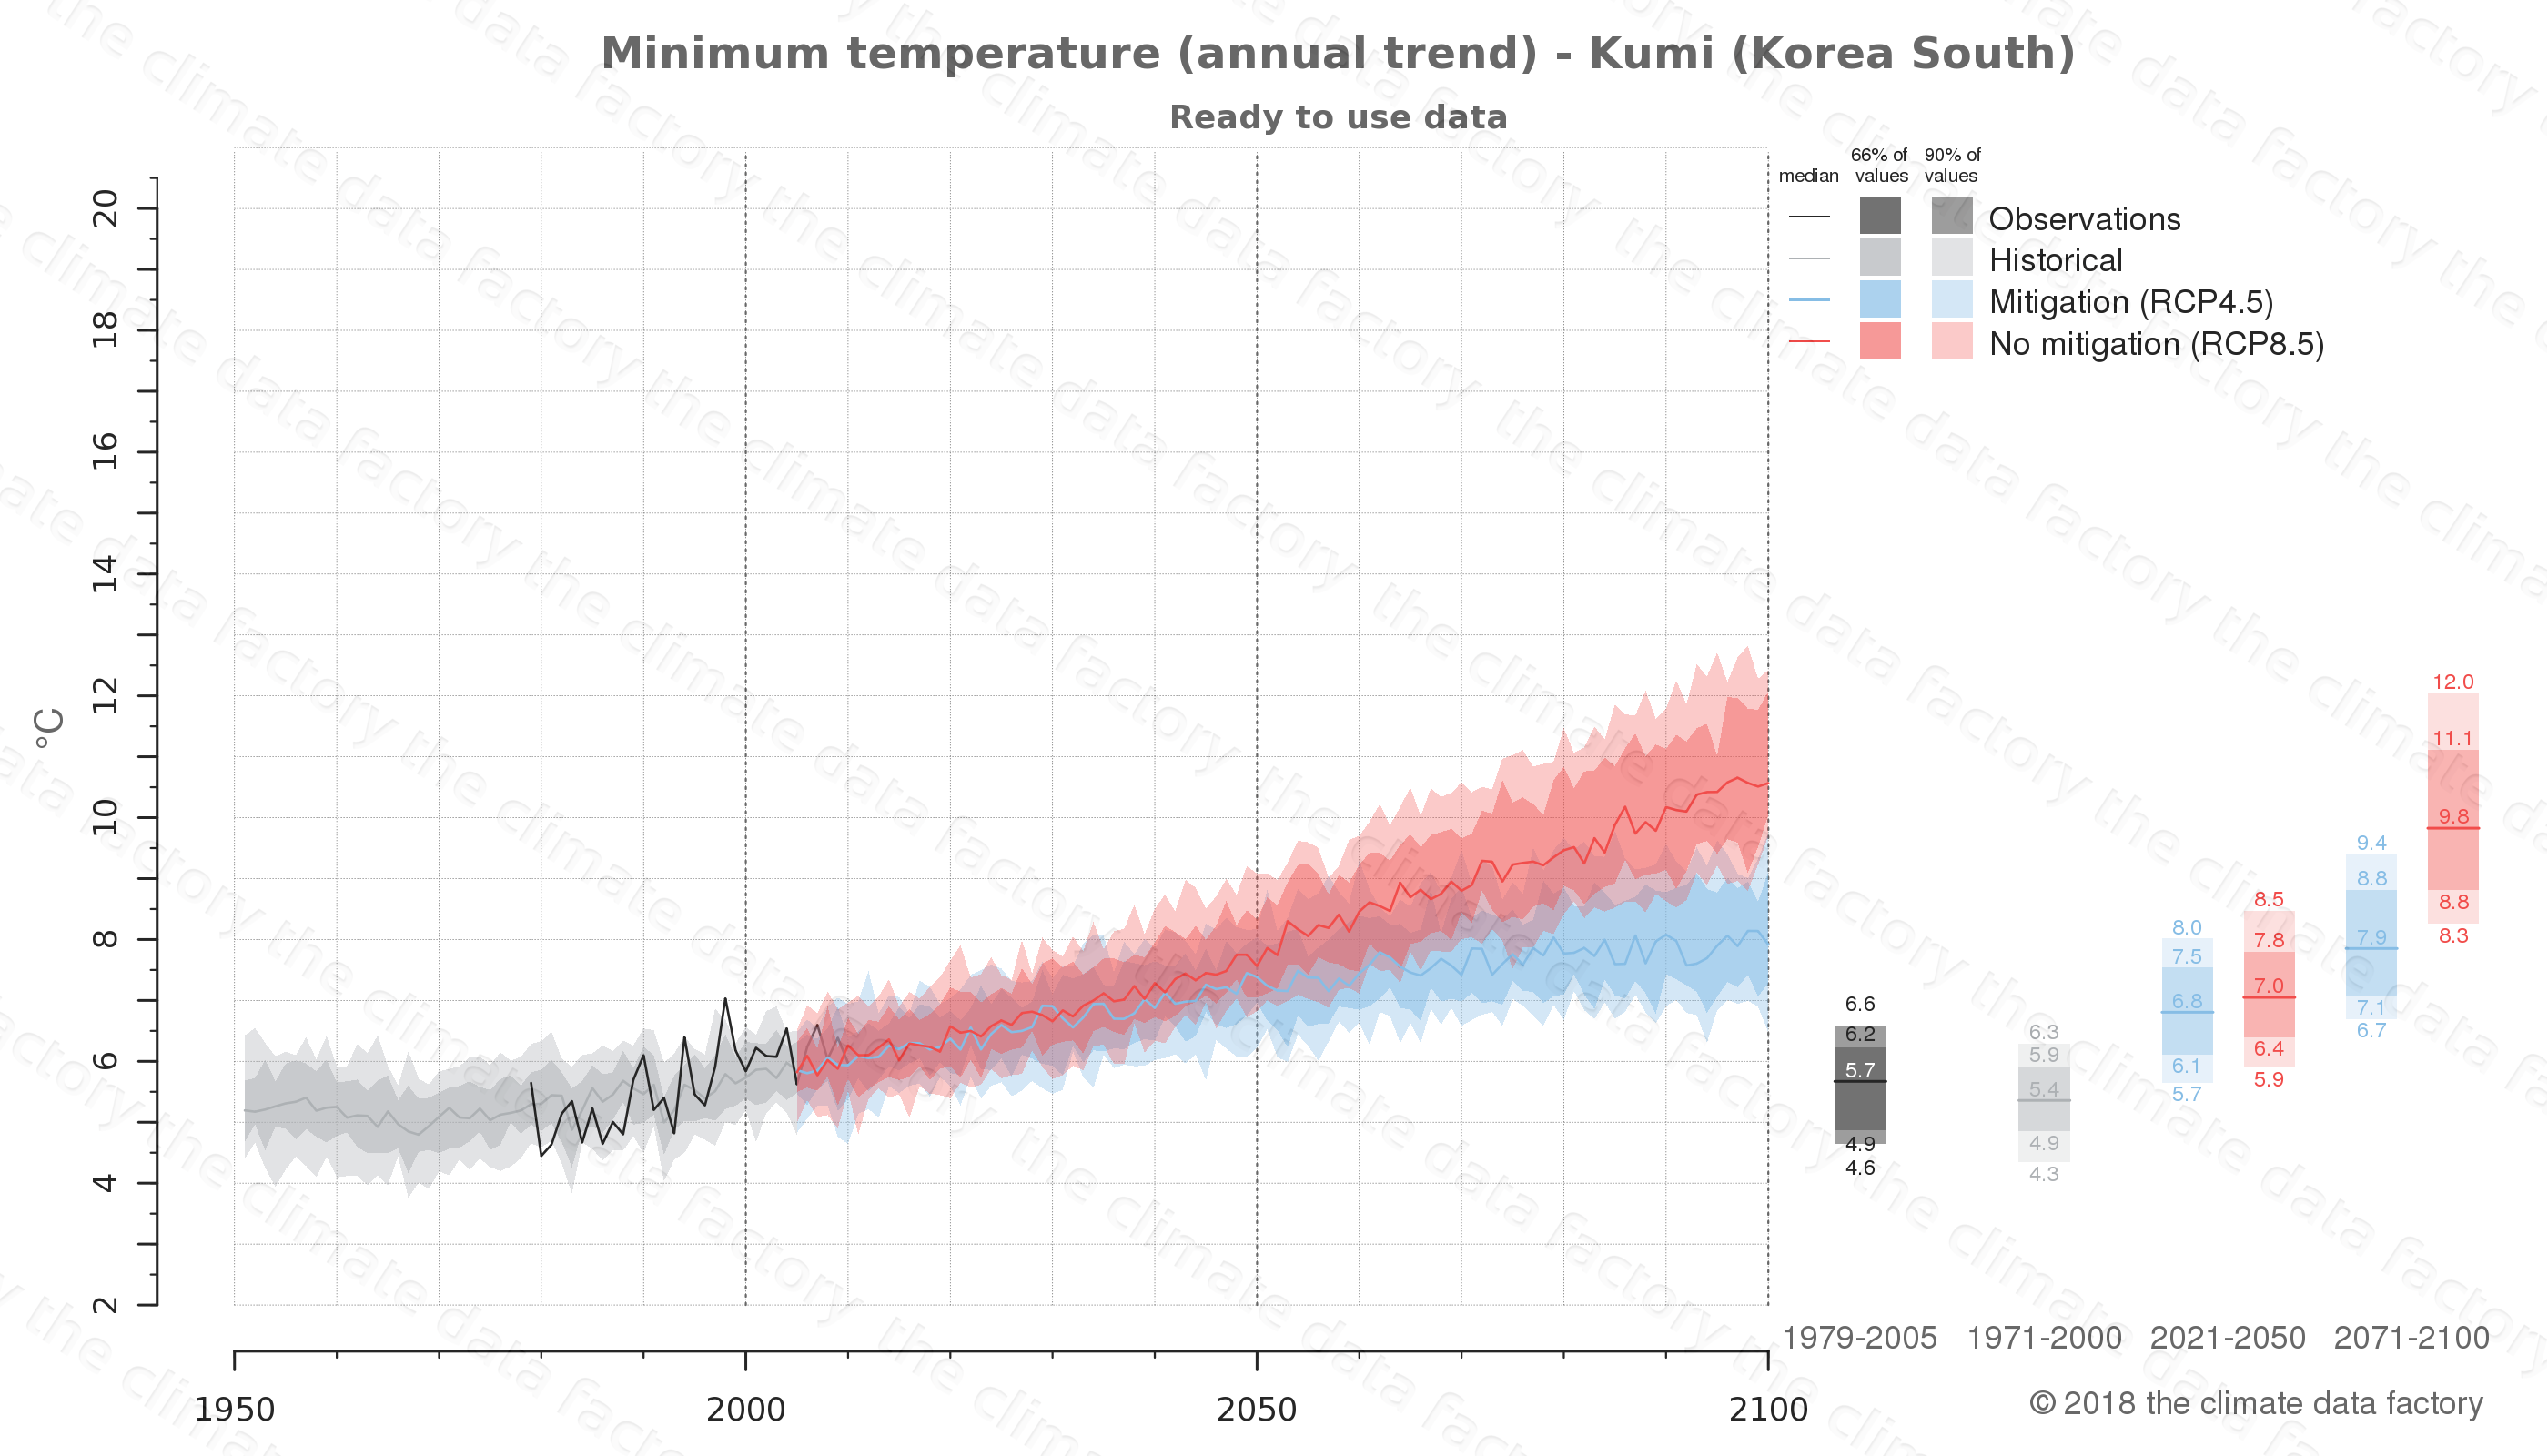 climate change data policy adaptation climate graph city data minimum-temperature kumi south korea